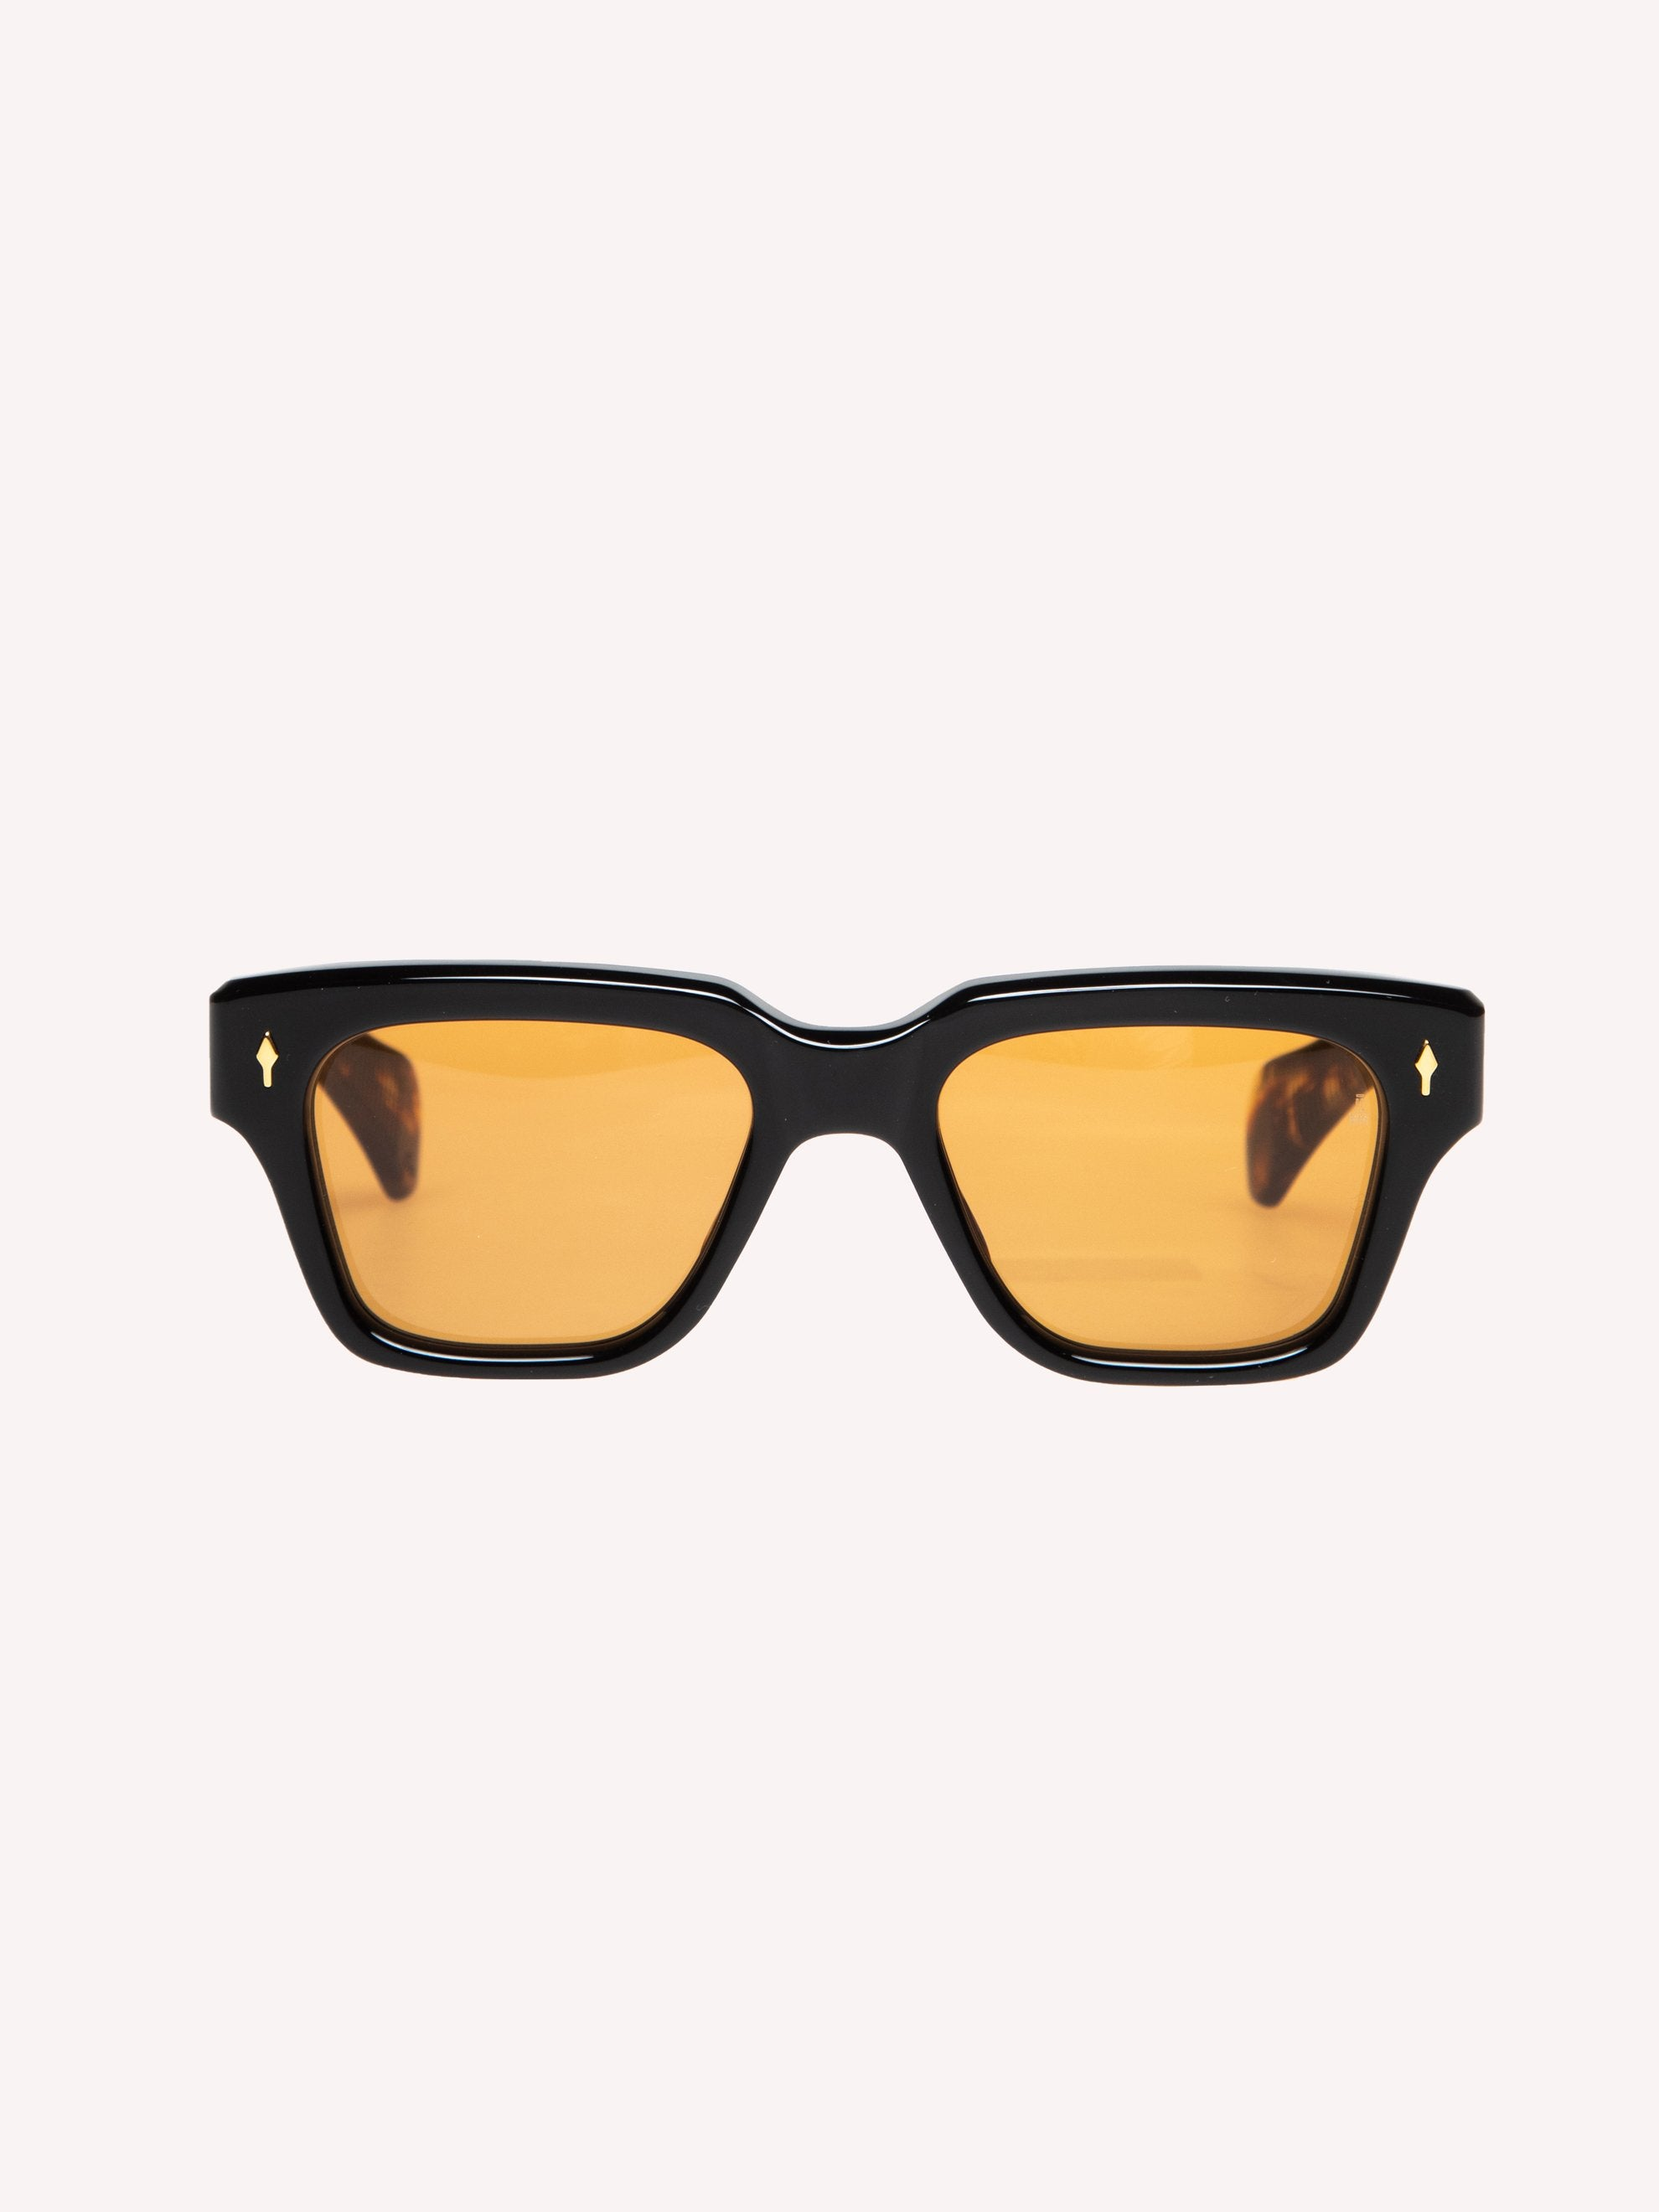 Orange CR39/ 18k Dark Gold Fellini Noir 1